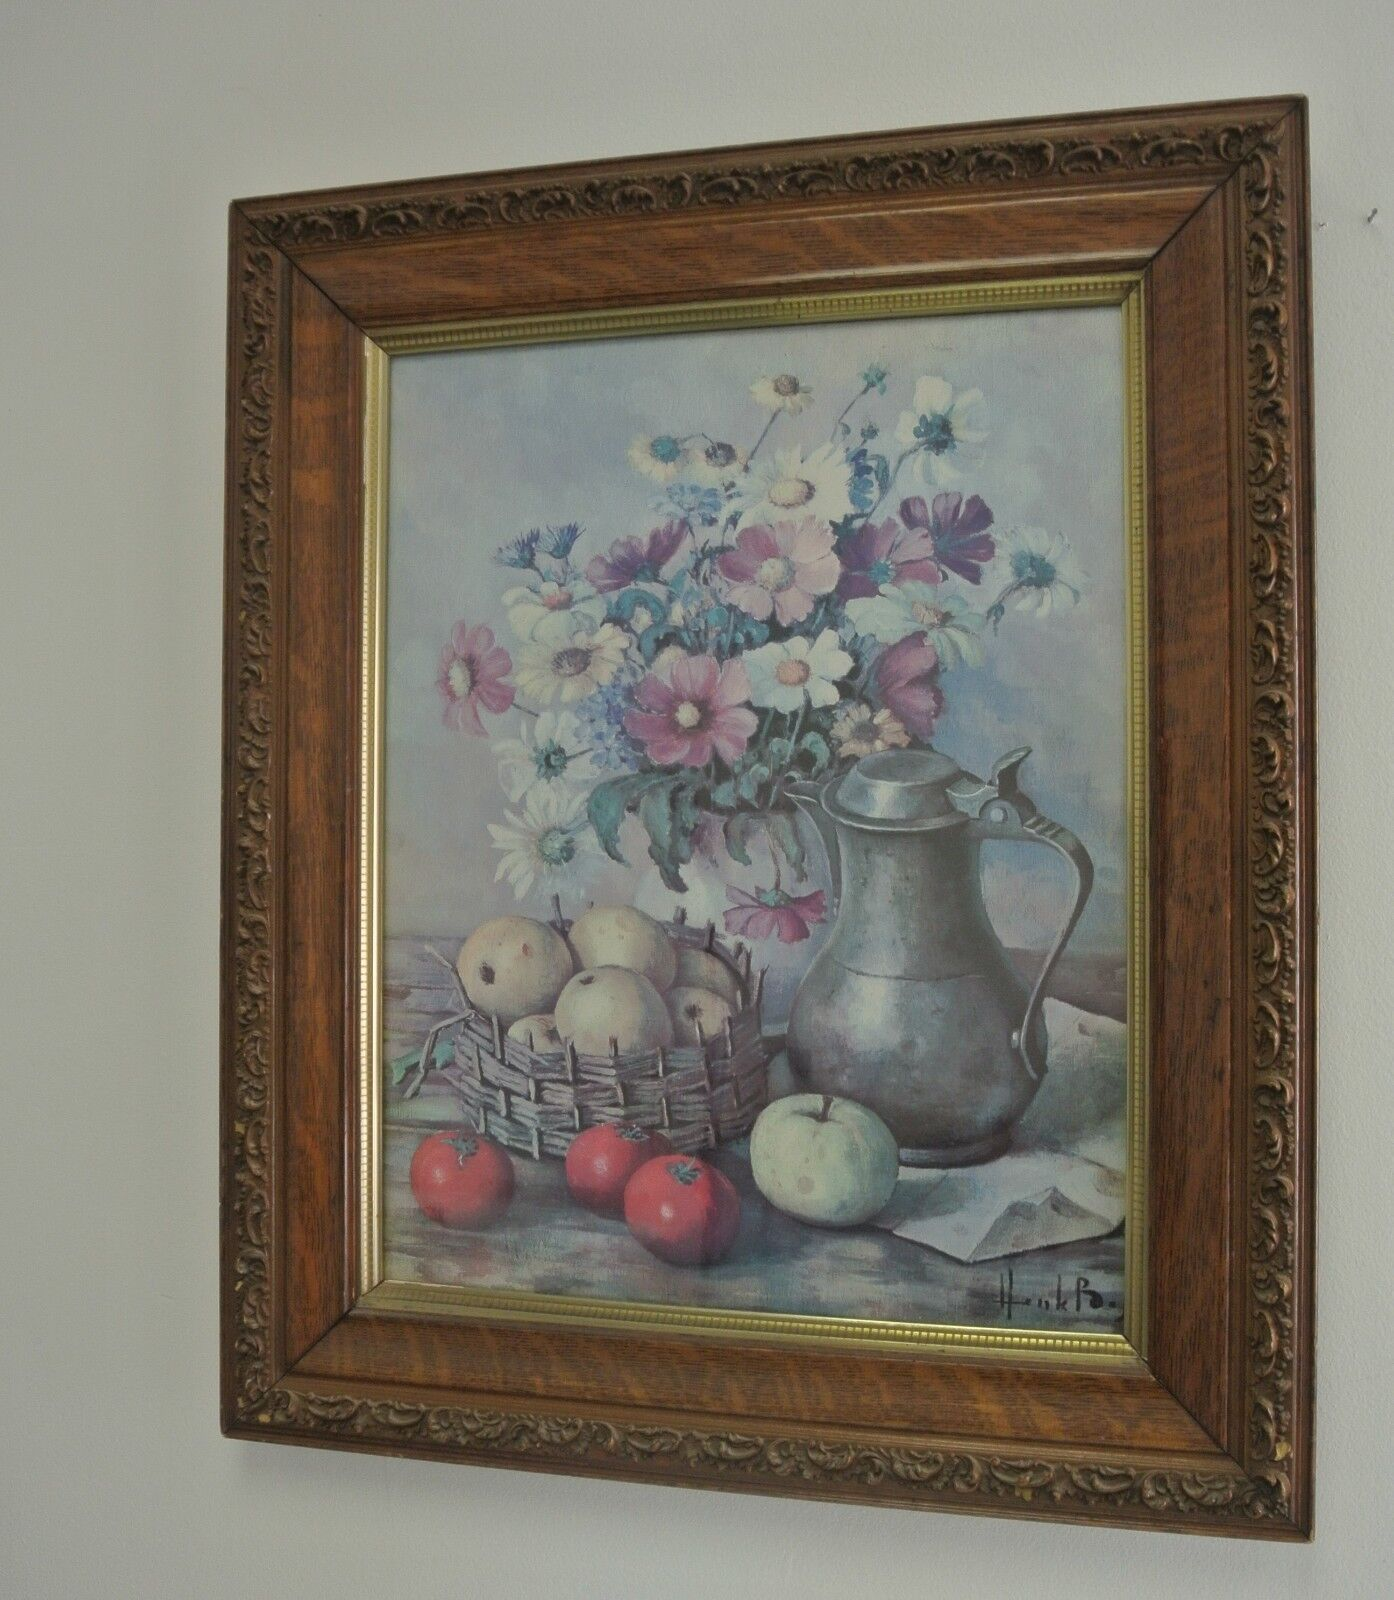 Vintage Carved Wood Frame With Print of Flower Vase, Fruits, and Pitcher, Hank B